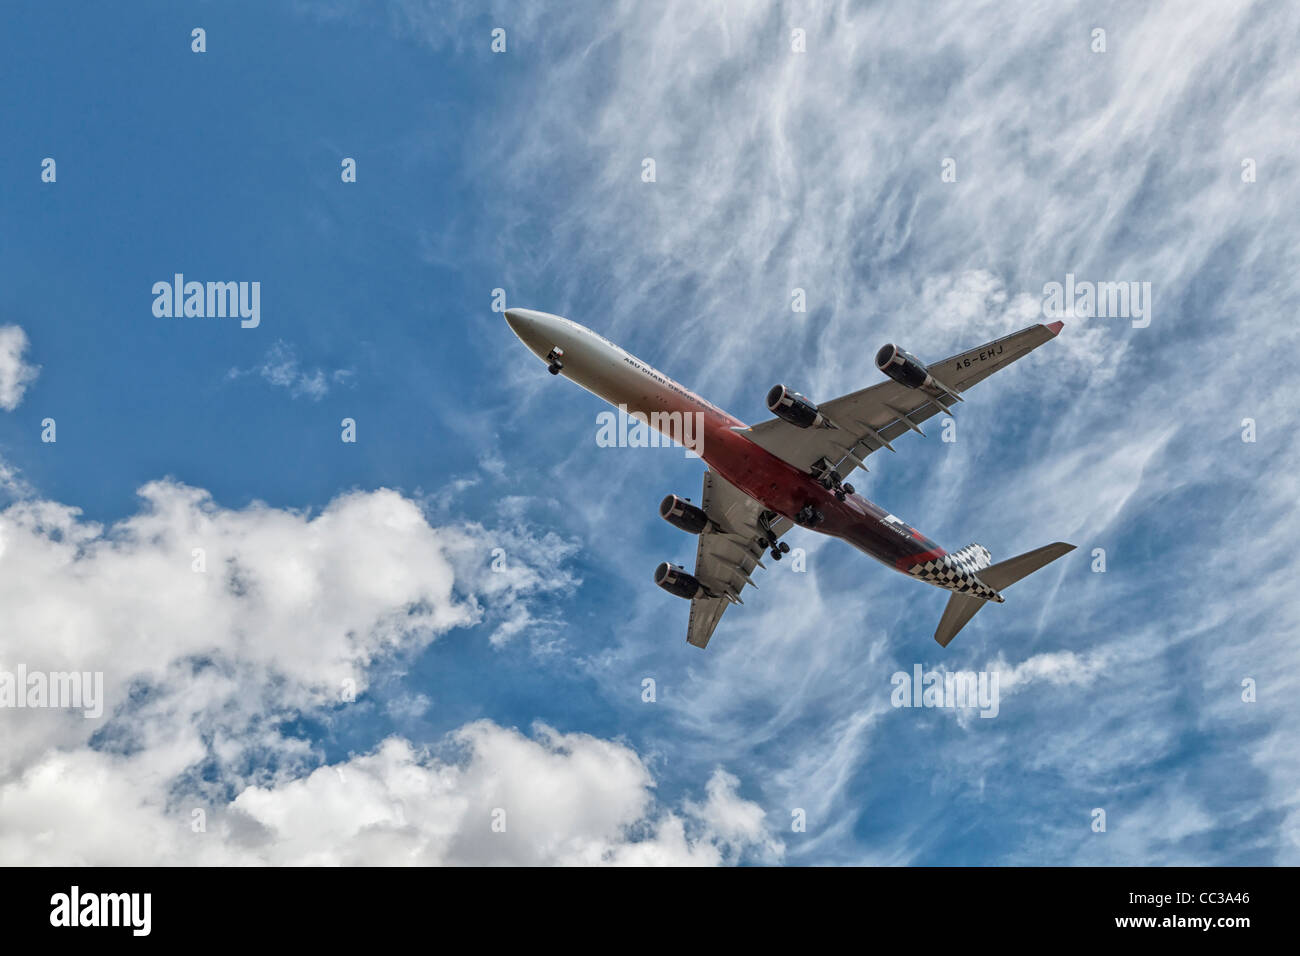 An Airbus A340 of Etihad Airways on final approach - Stock Image